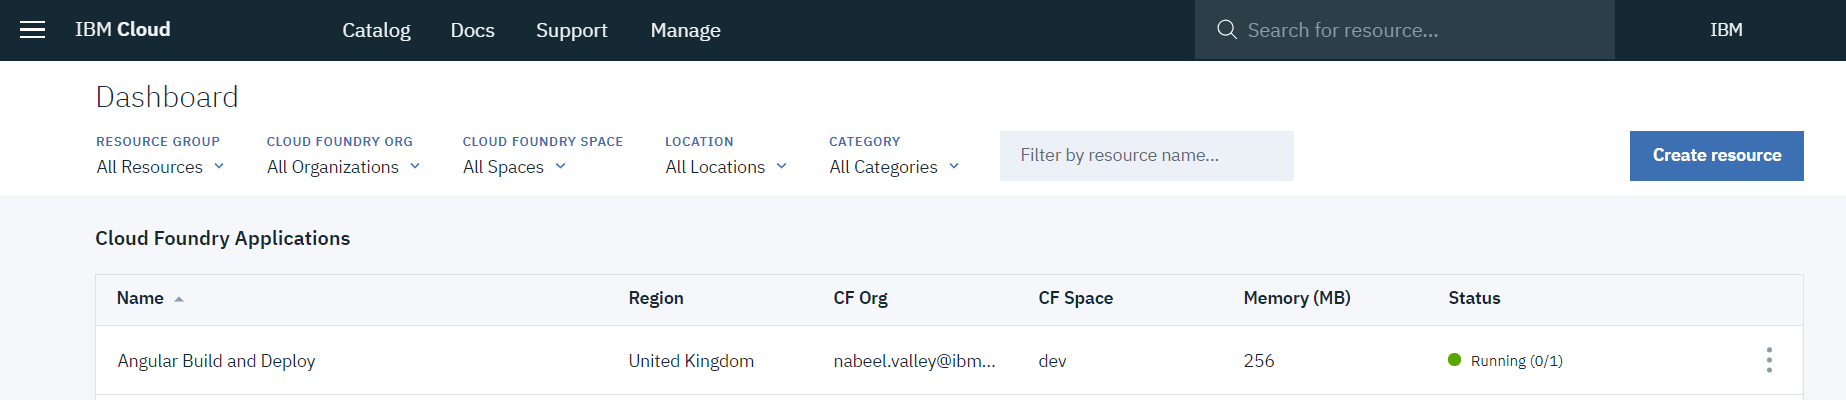 Our Application Resource on the Dashboard